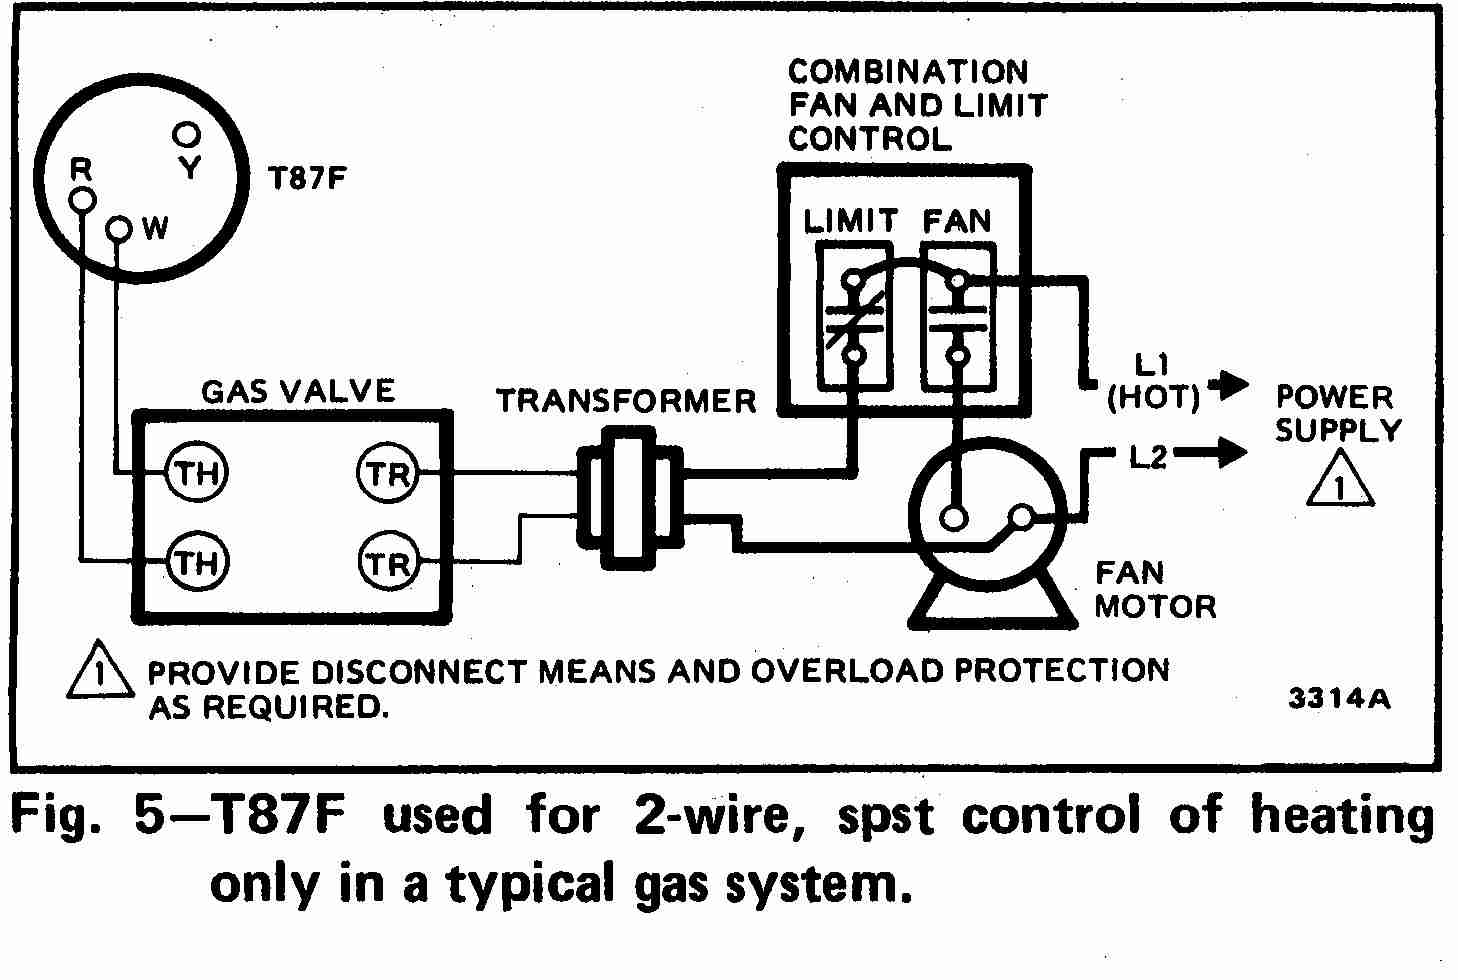 TT_T87F_0002_2Wg_DJF room thermostat wiring diagrams for hvac systems wiring diagram for gas fireplace at edmiracle.co